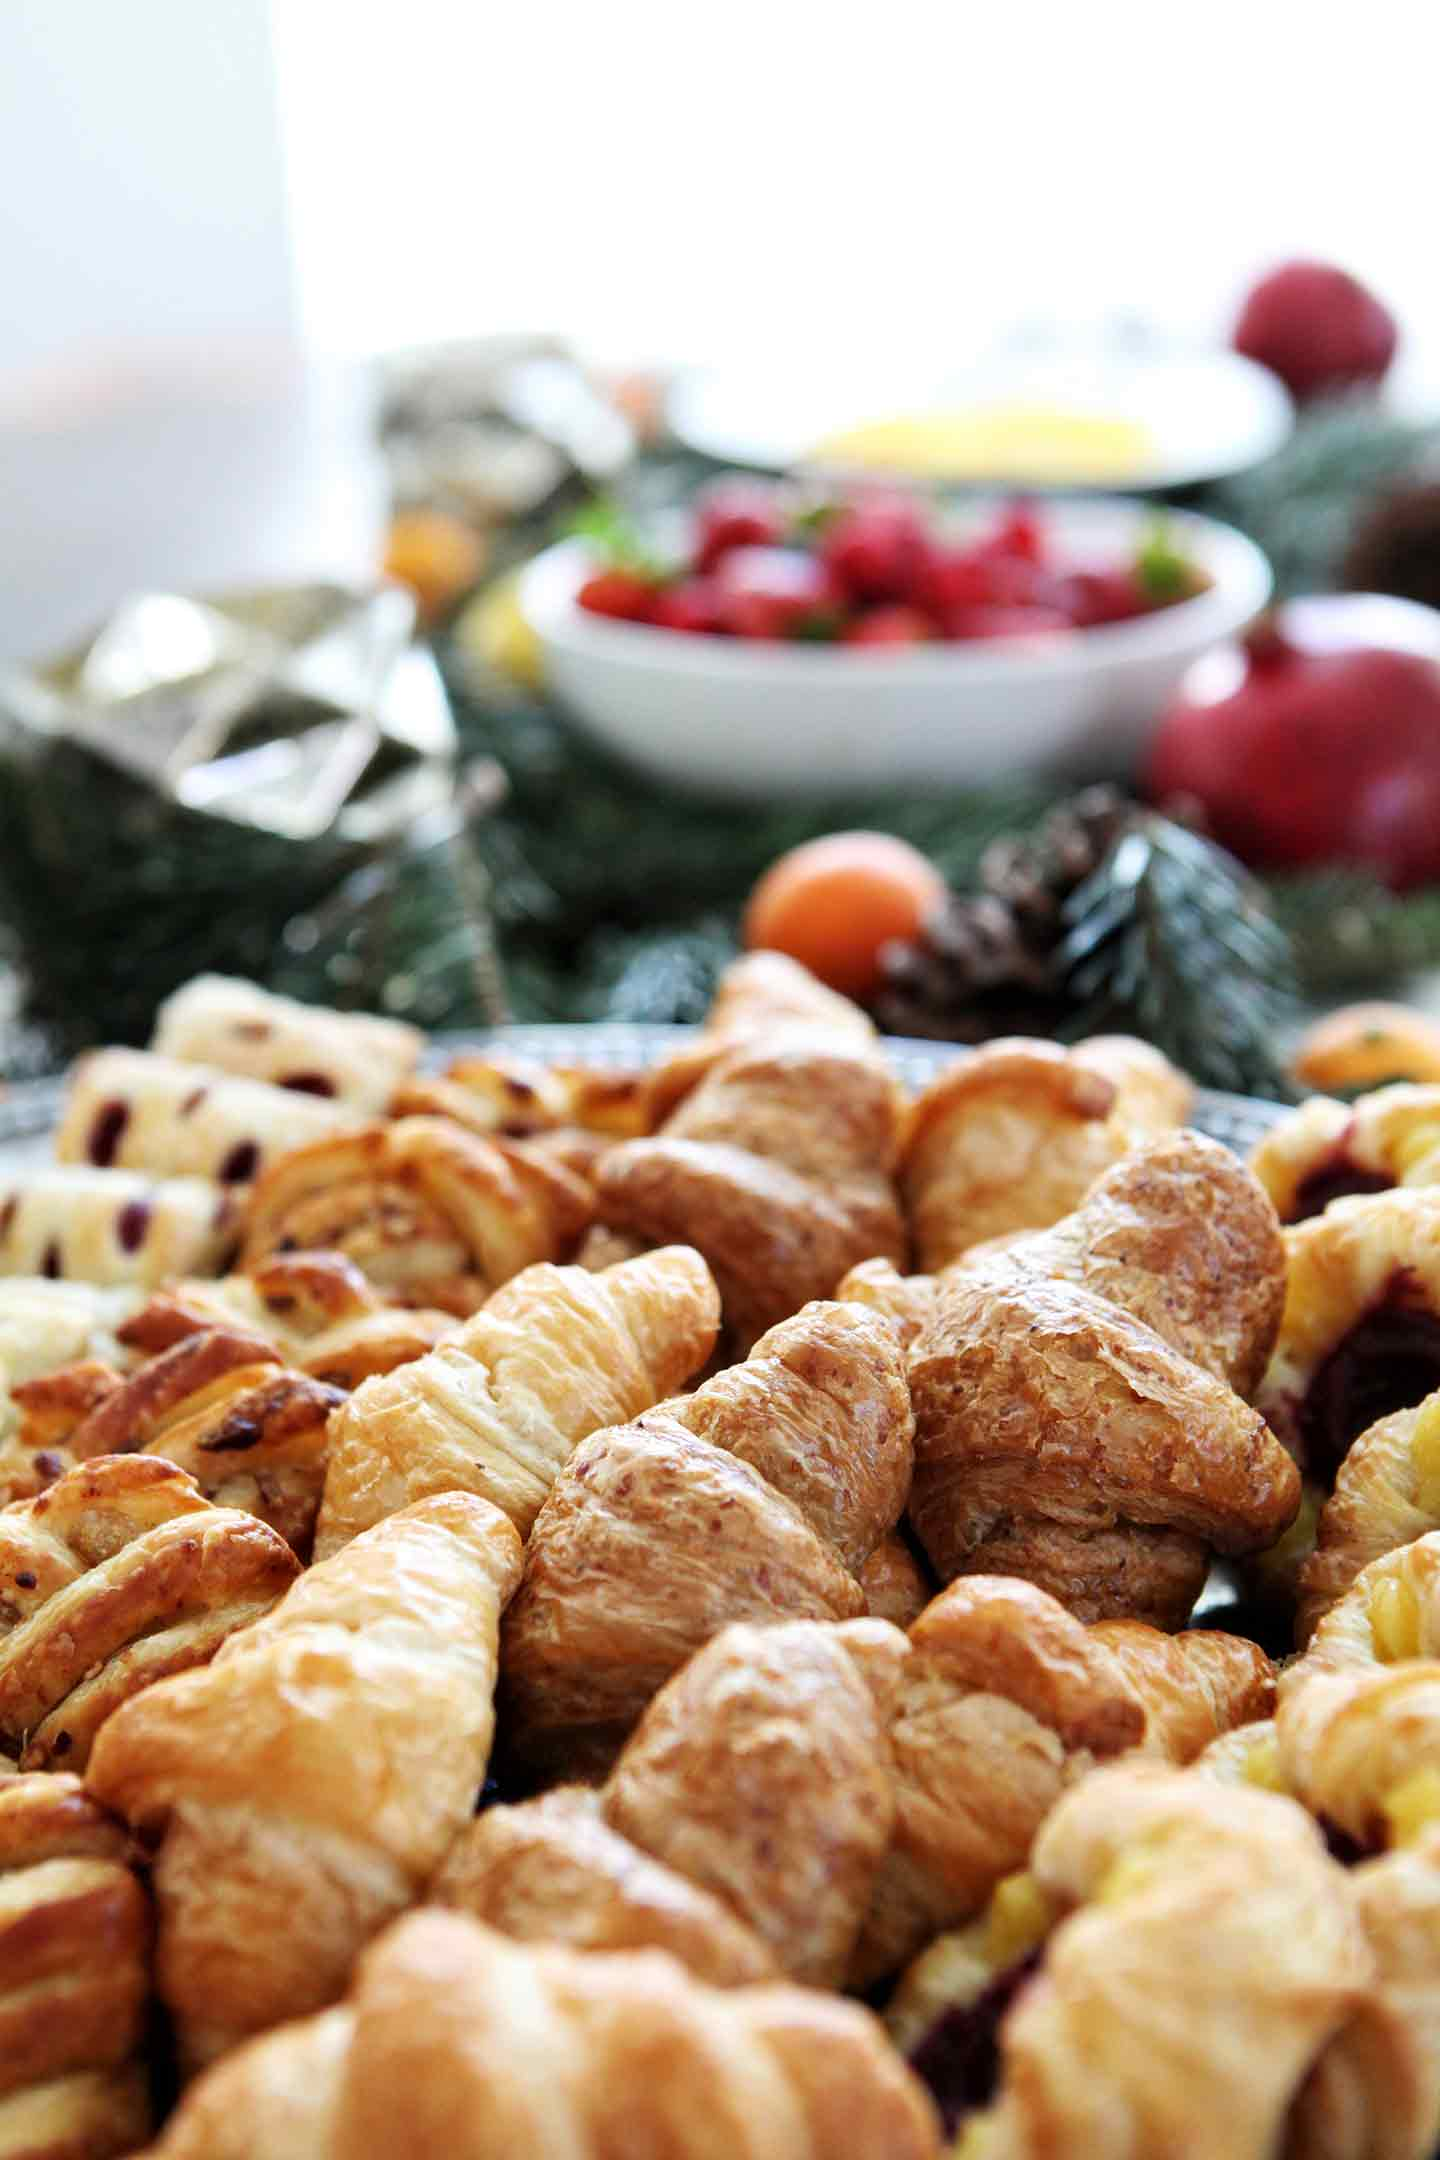 Pastries are shown on a silver platter with other holiday brunch dishes shown behind them